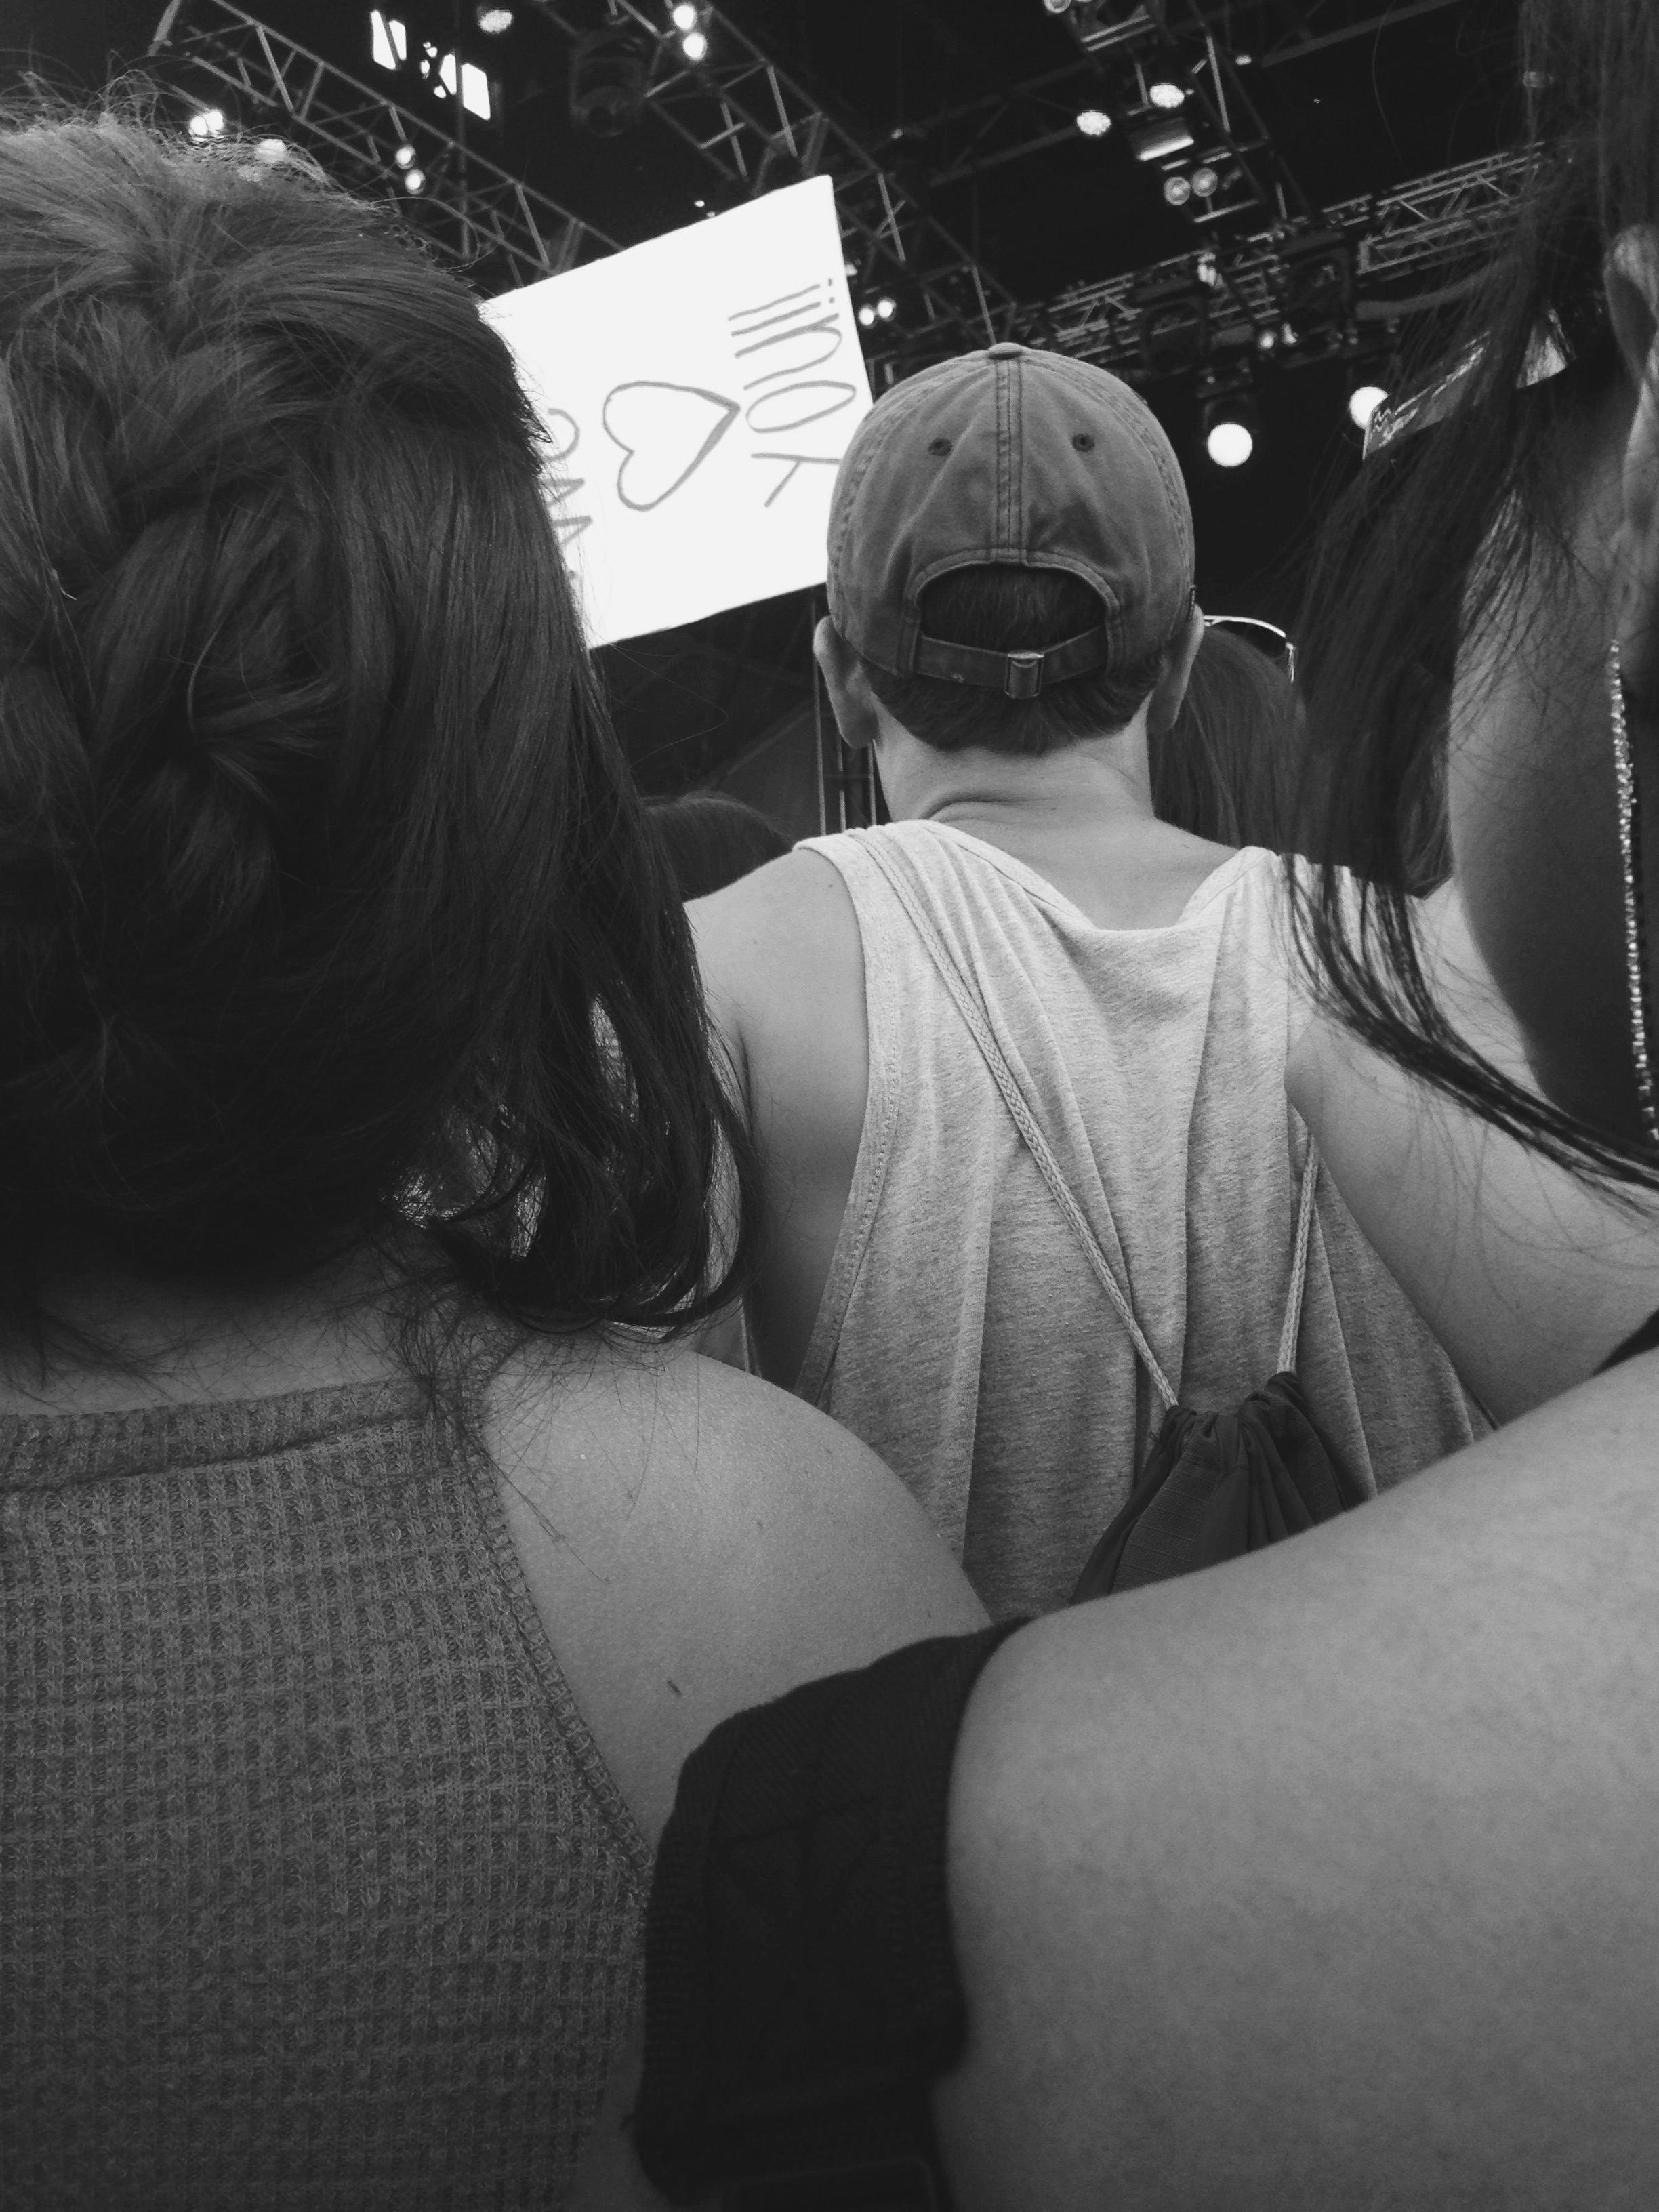 My view for Vance Joy.   I always swore I wasn't short. But it looks like I need to revisit that theory...